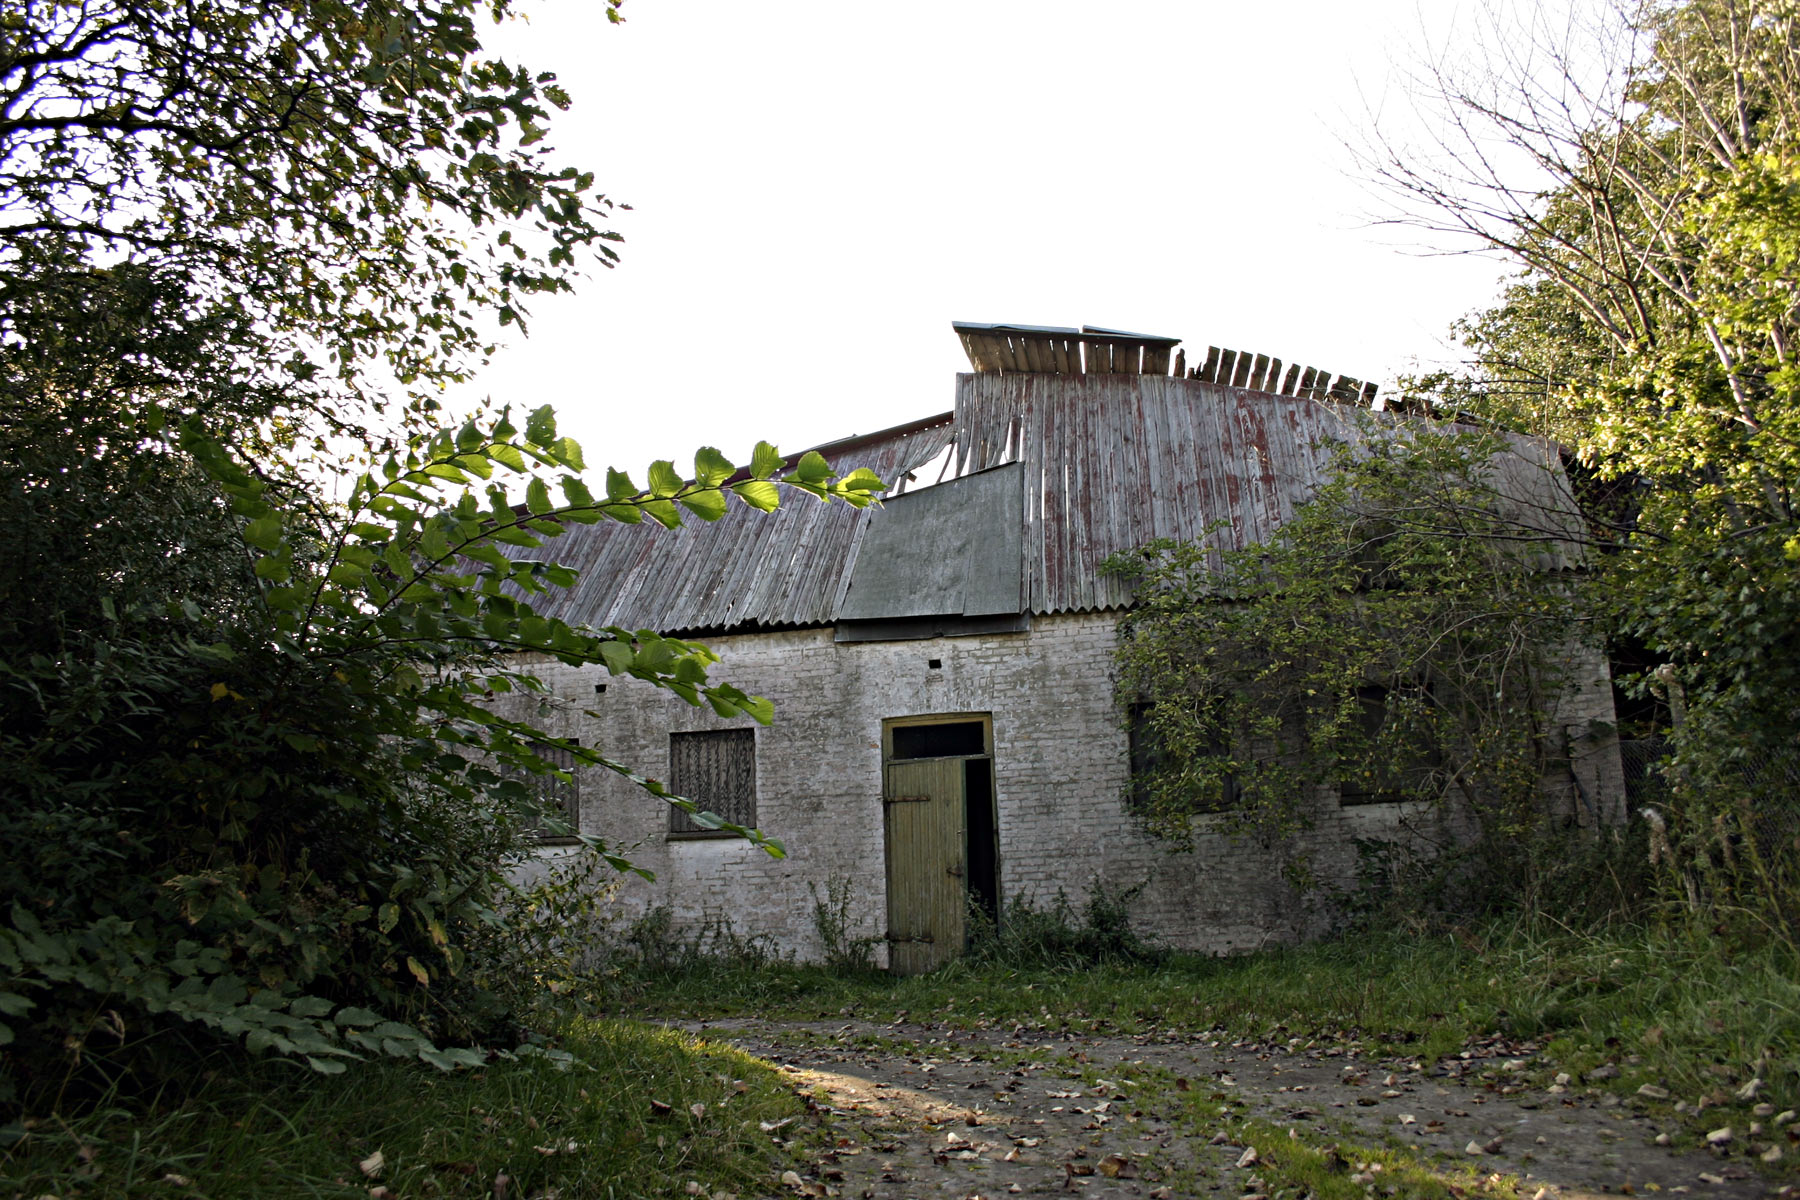 Collapsed roof, Abandoned, Broken, Building, Collapsed, HQ Photo